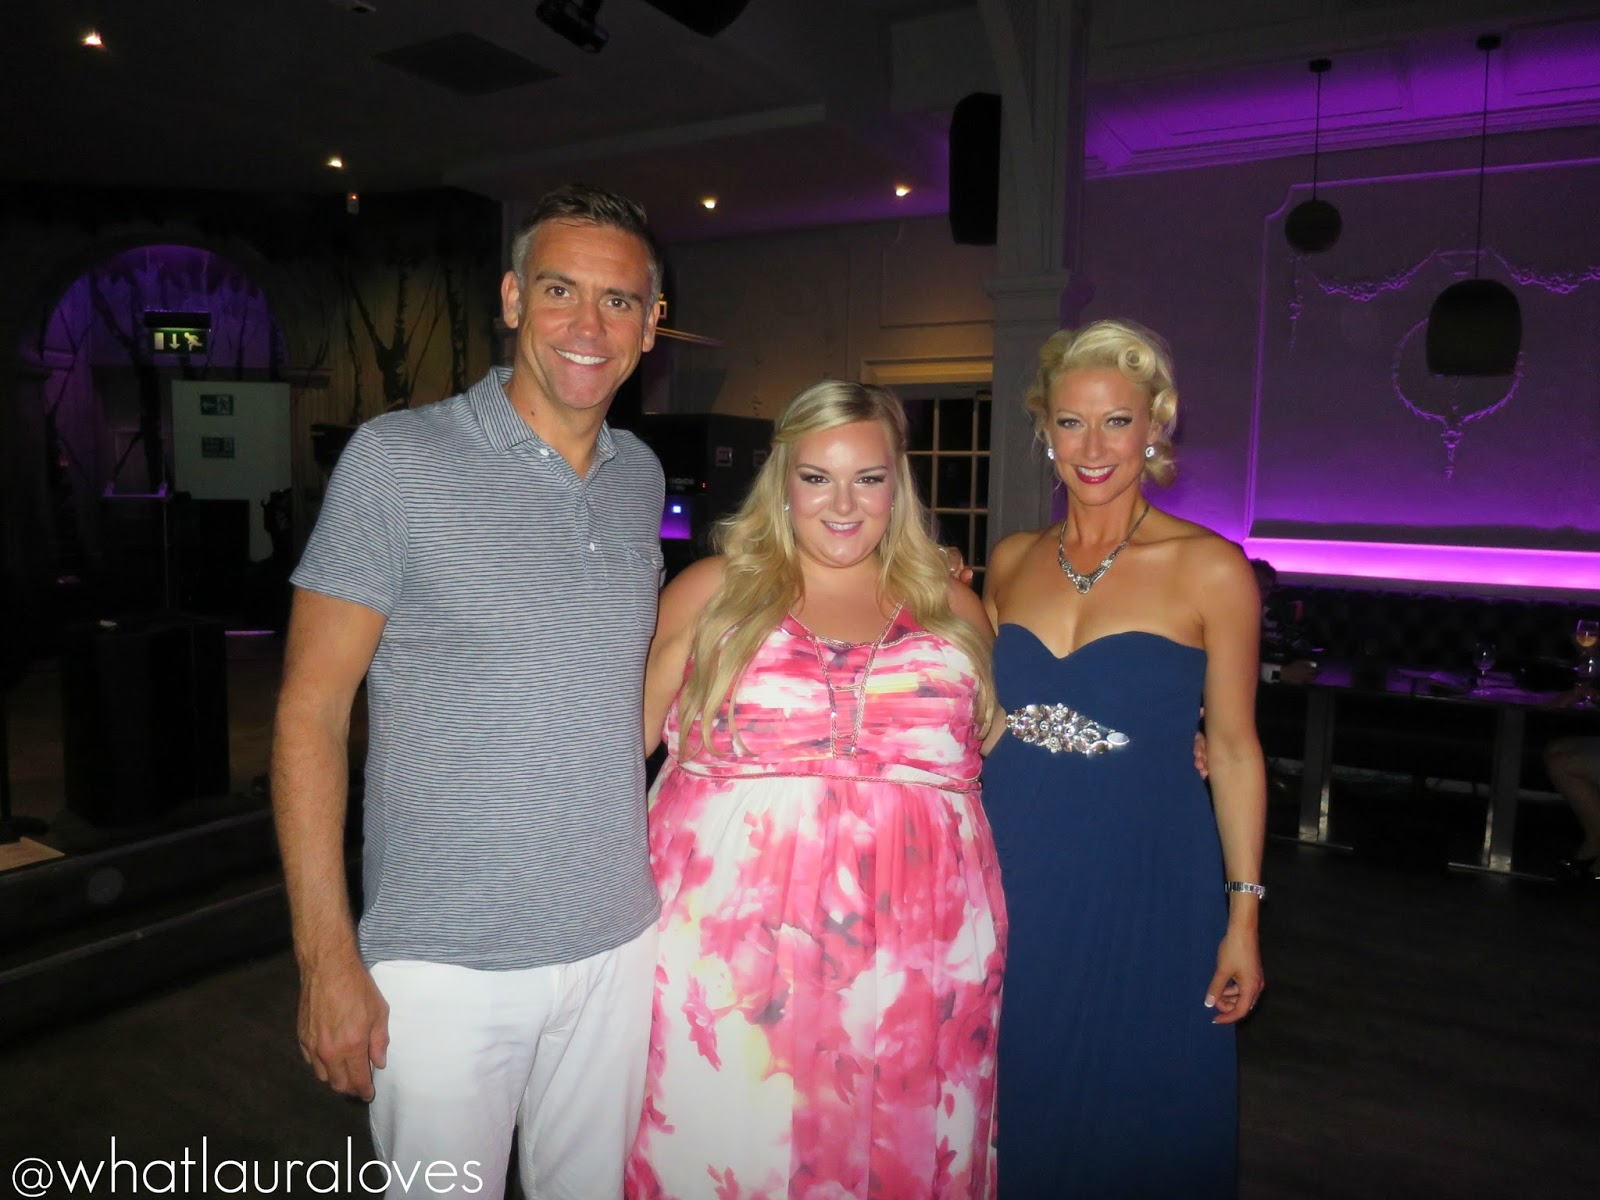 An Audience with Faye Tozer at Bonbar, Newcastle. Alongside Jason Isaacs and the Ambassadors of Swing big band. Organise by Red Shoe Events.